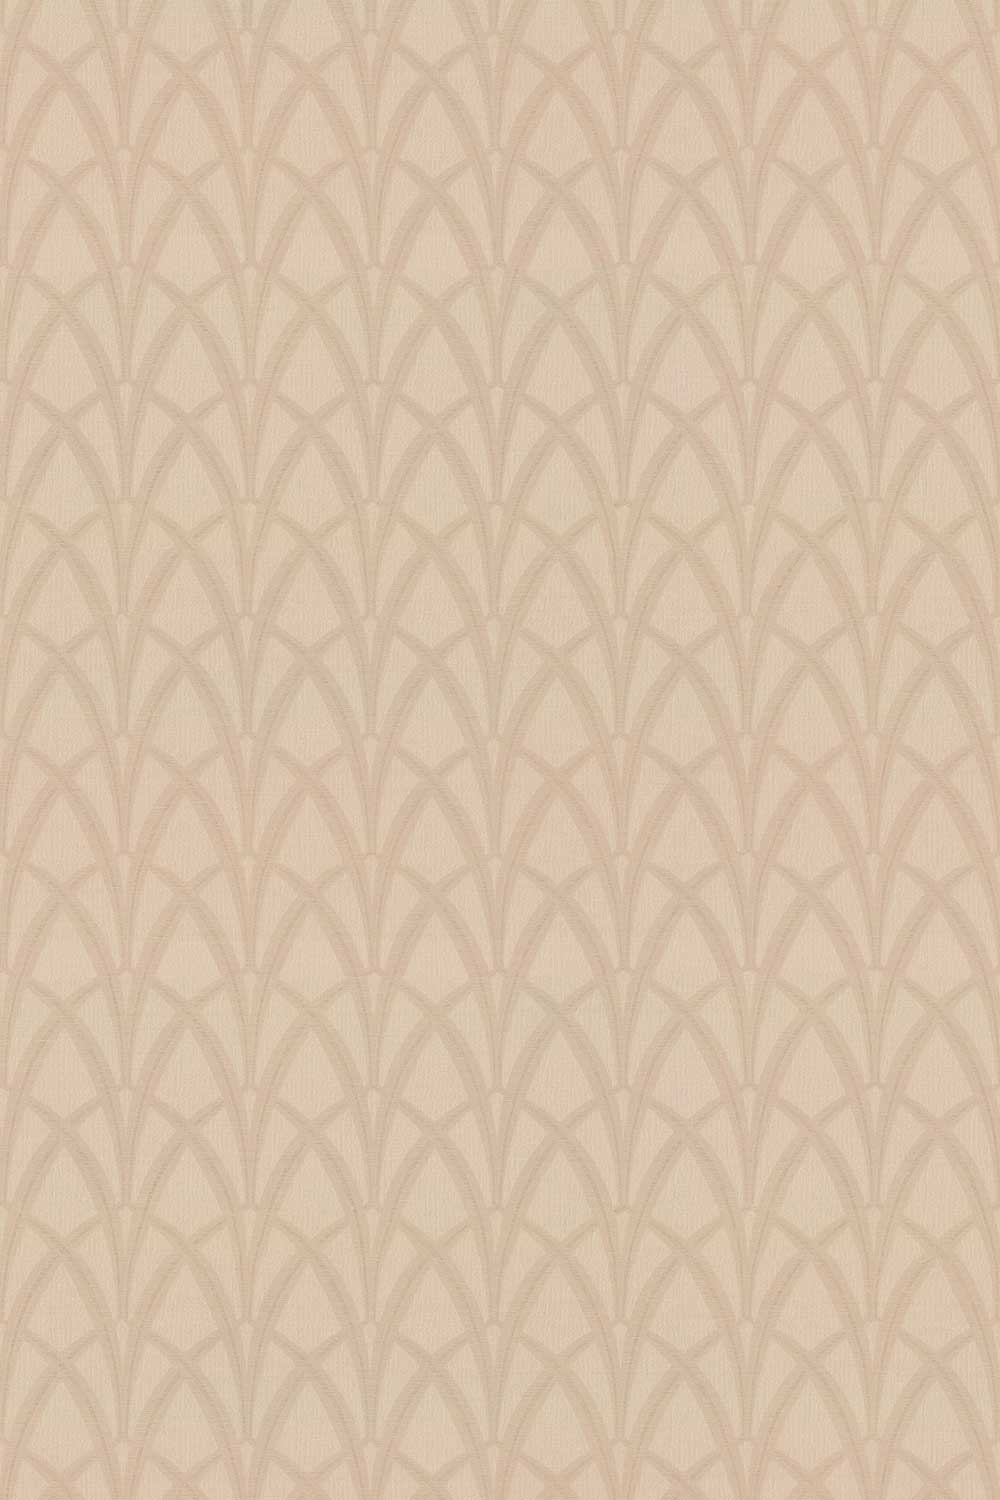 The Chateau by Angel Strawbridge Broadway Gold Fabric - Product code: BRO/GOL/13700FA